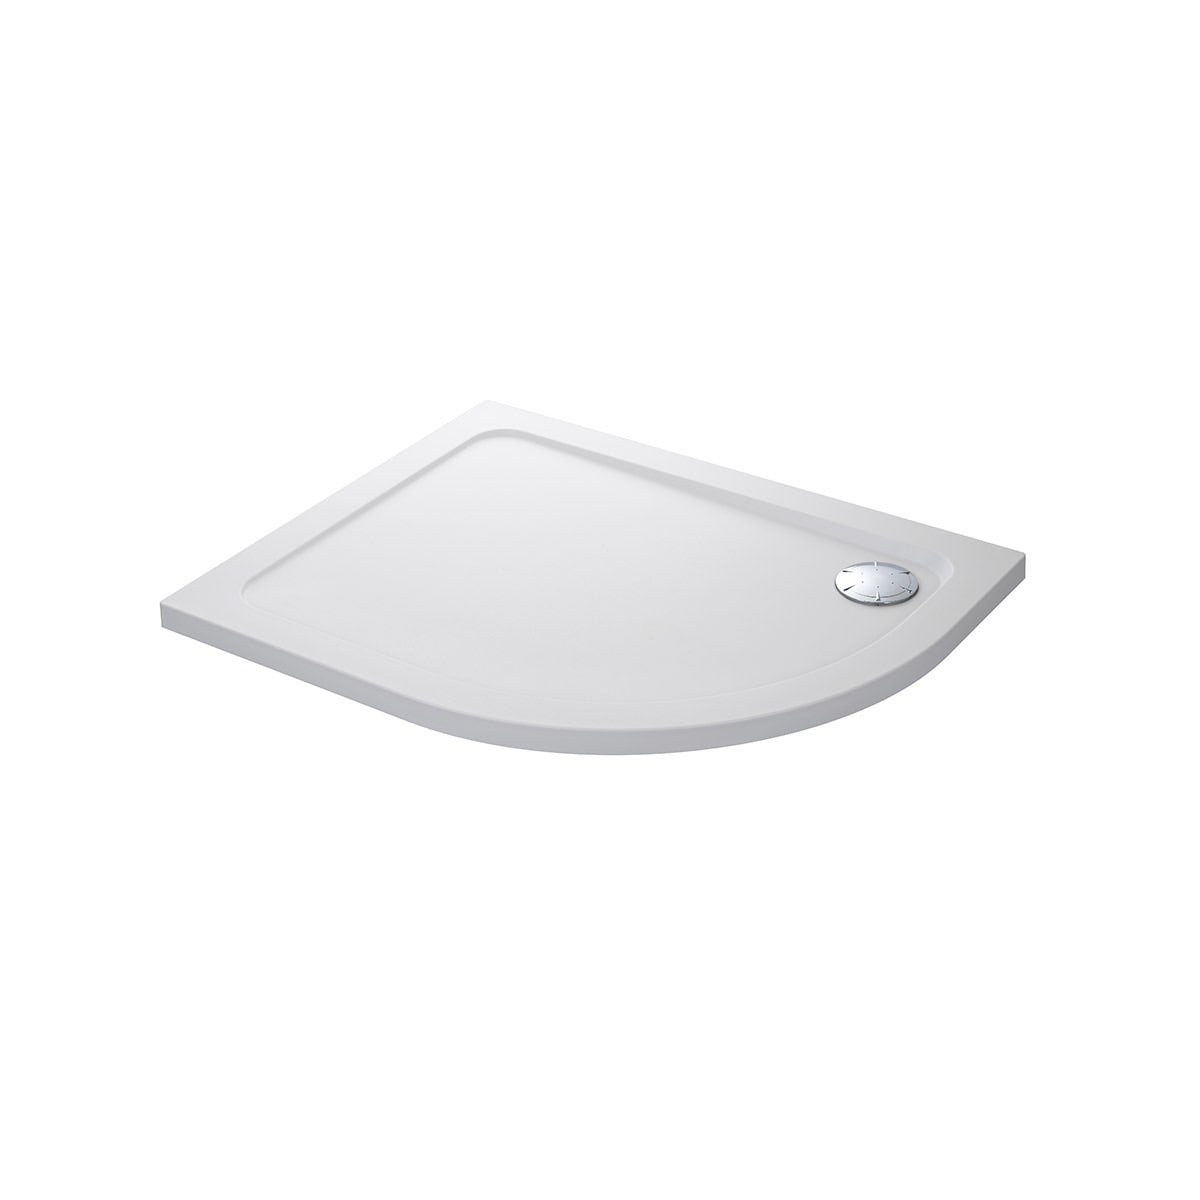 Mira Flight Safe Low Level Antislip Lh Quadrant Shower